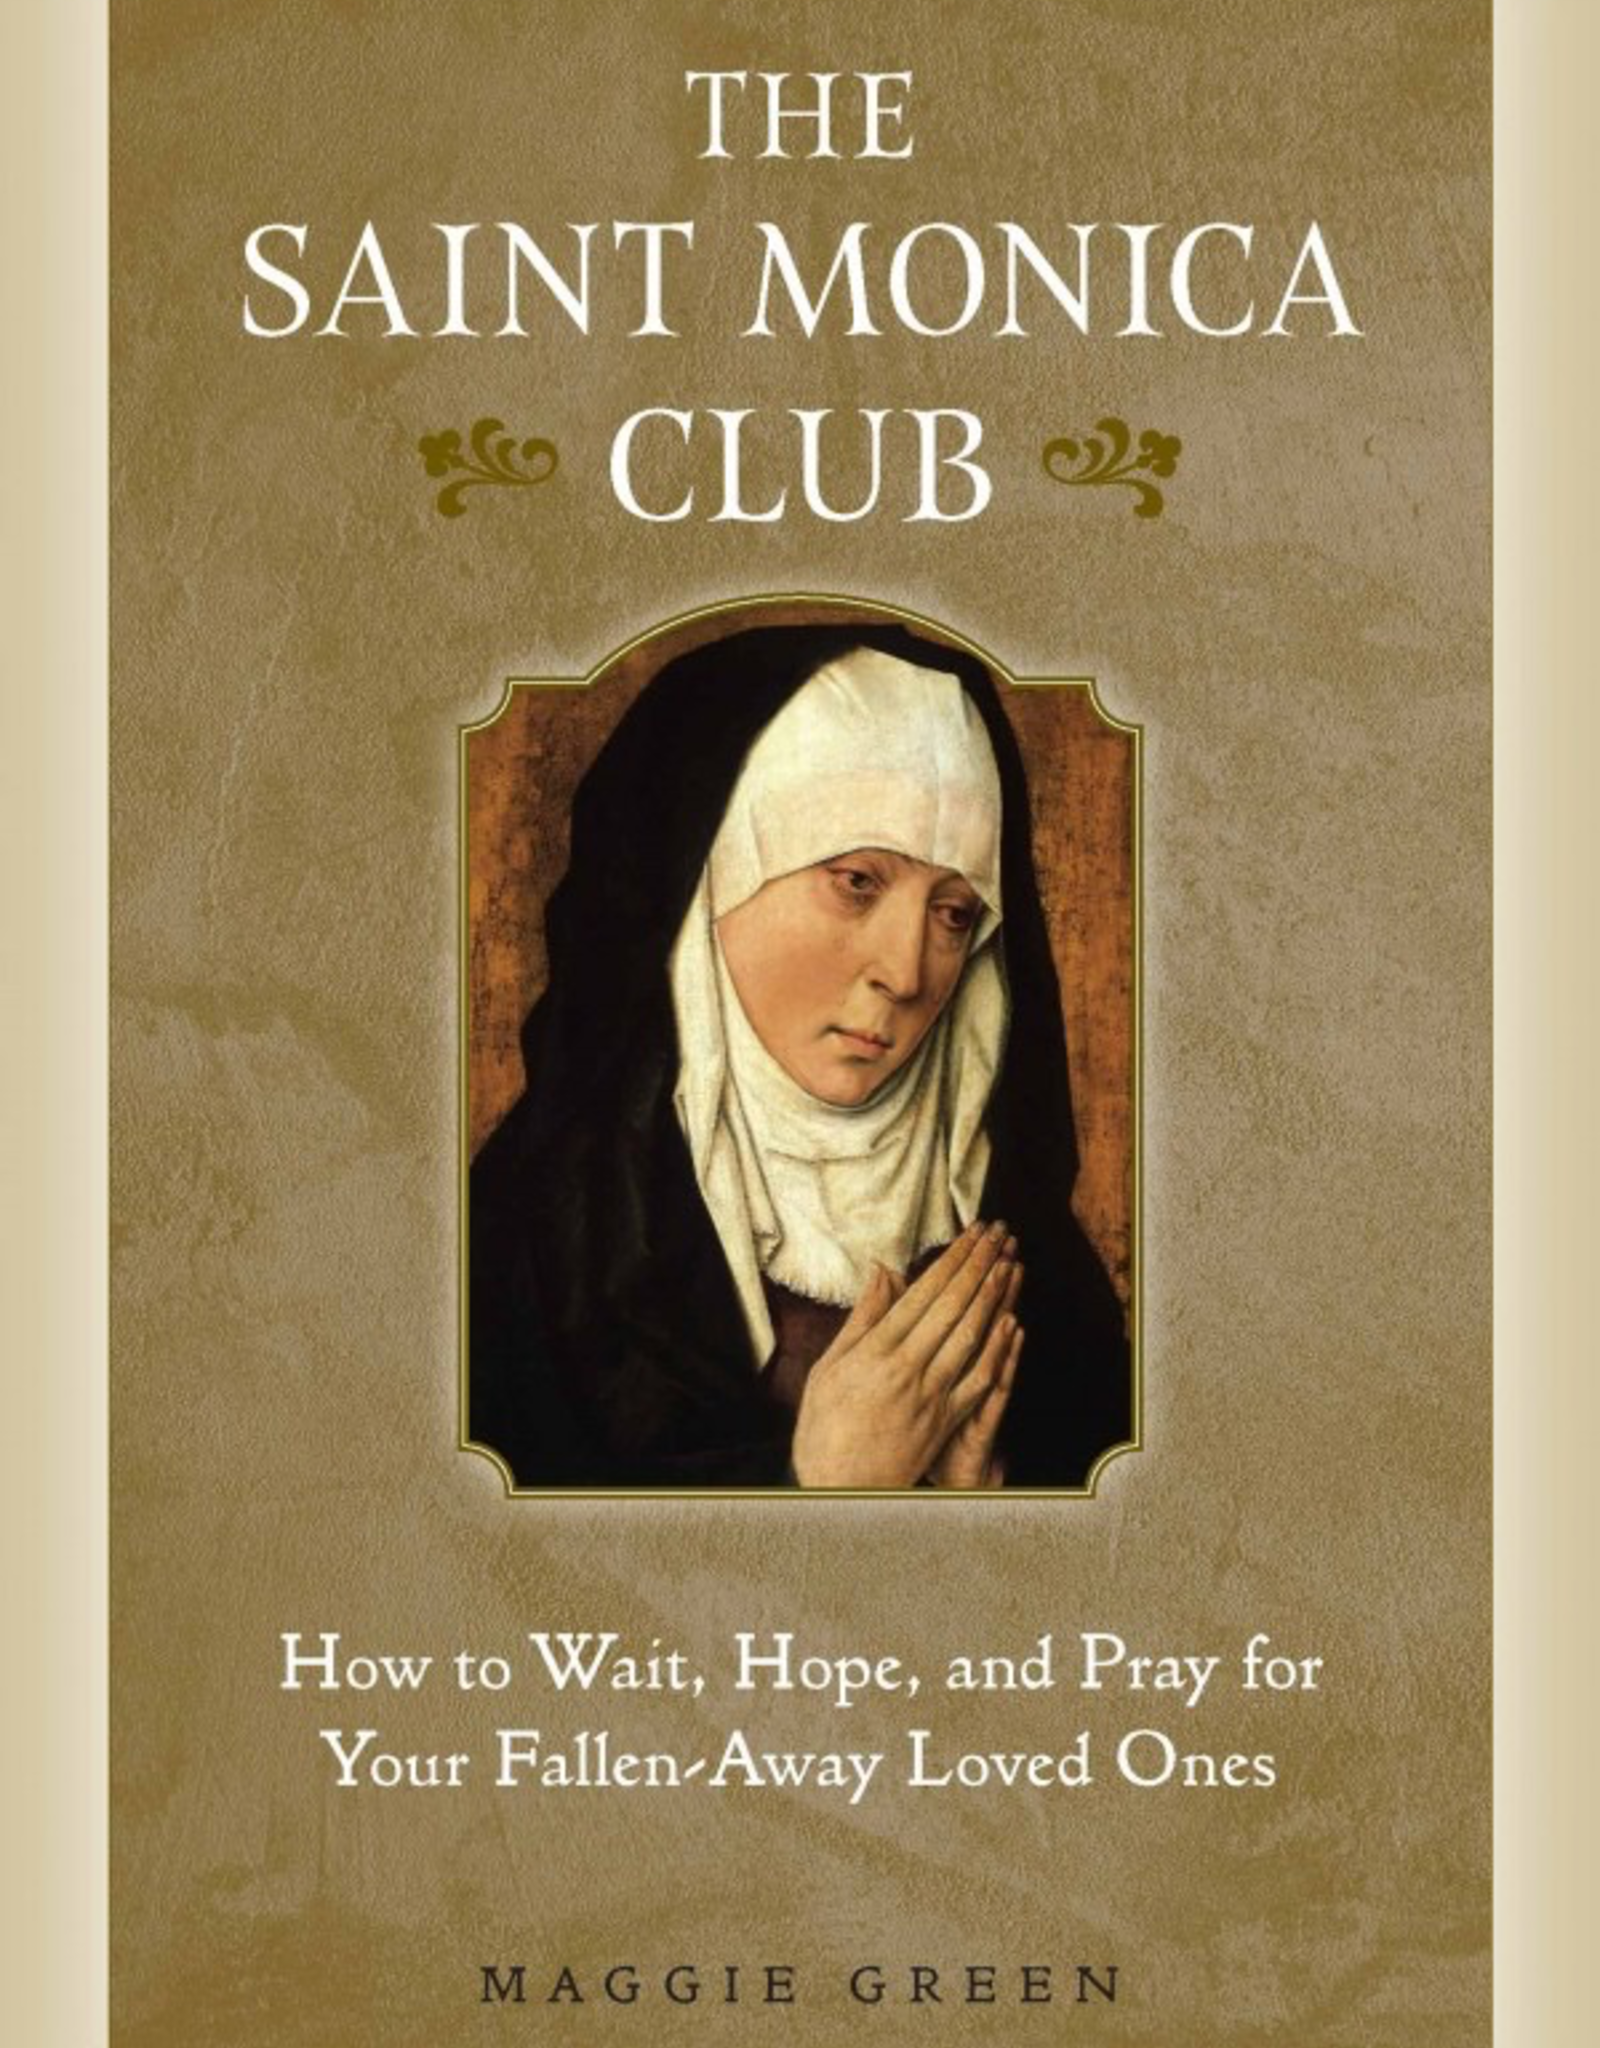 Sophia Institute The Saint Monica Club:  How to Hope, Wait, and Pray for Your Fallen Away Loved Ones, by Maggie Green (paperback)